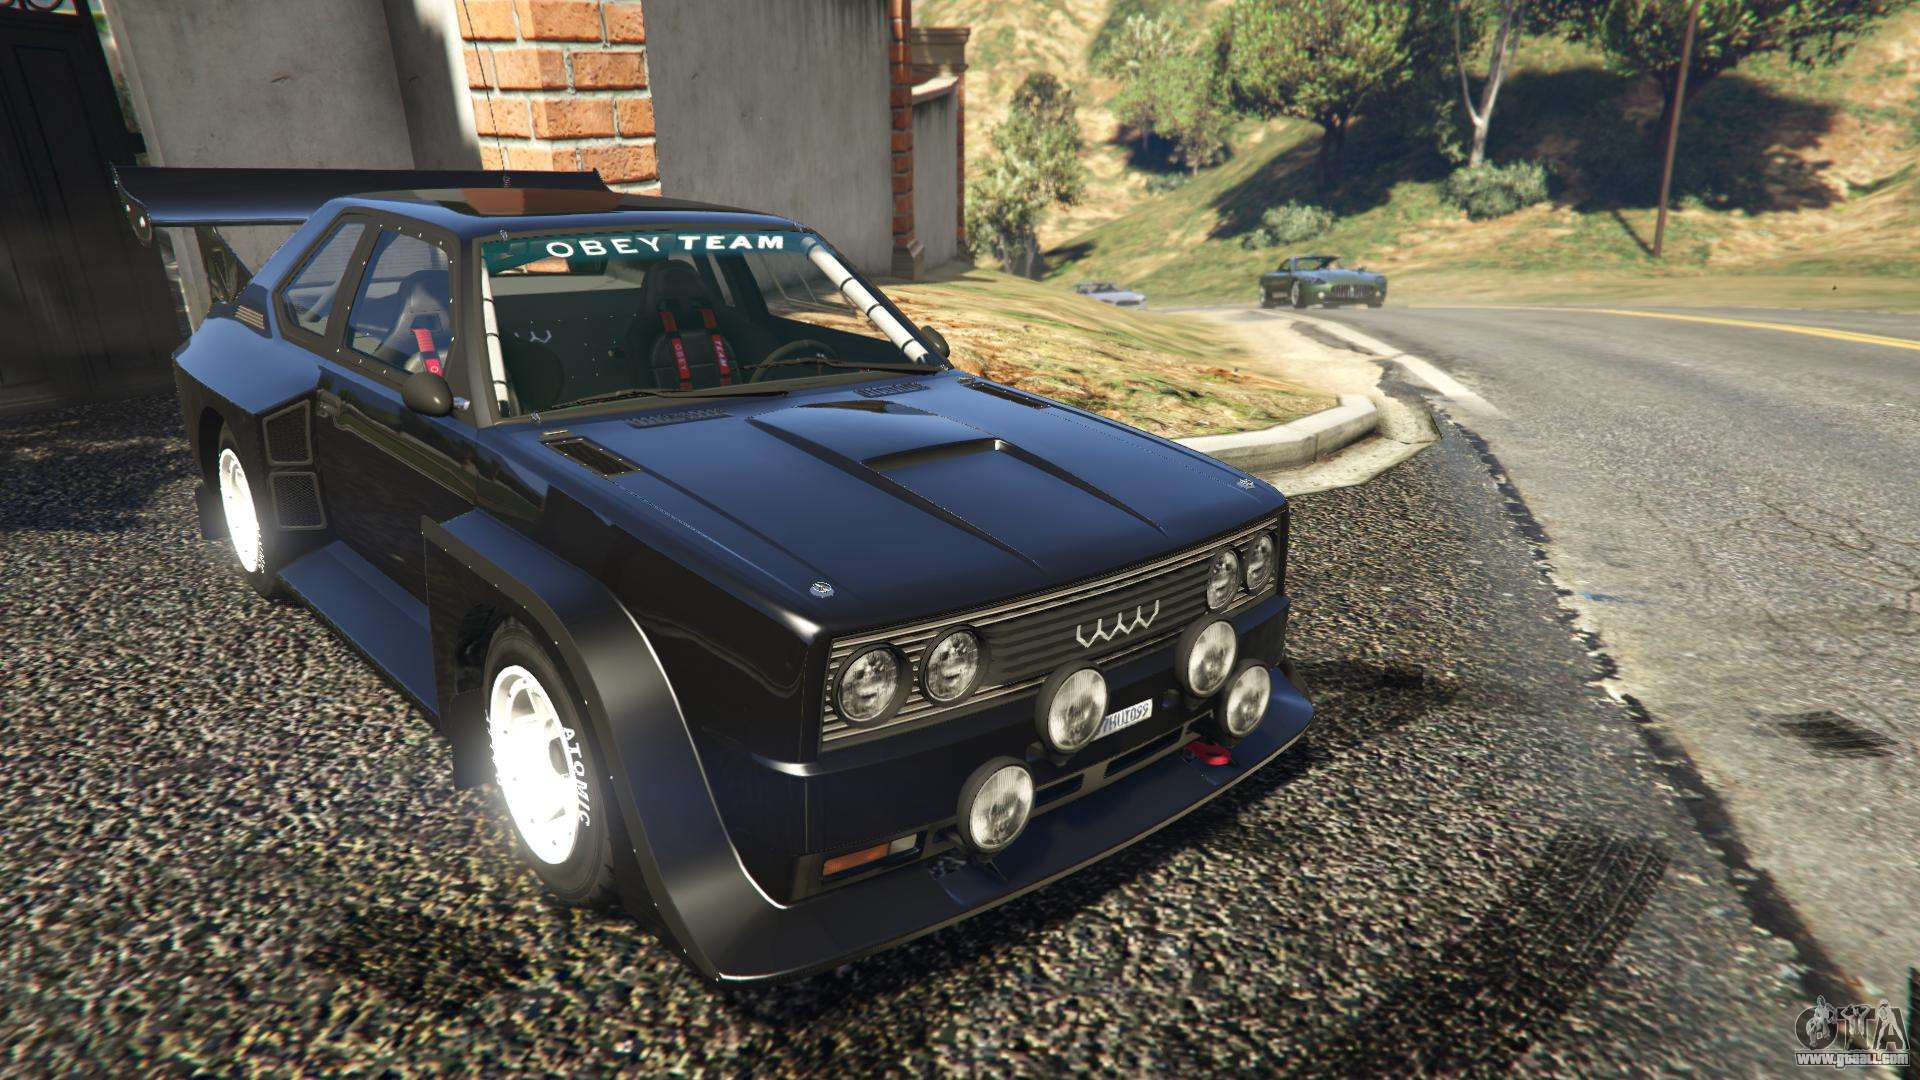 GTA 5 Criminal Enterprise Starter Pack - price, contents and